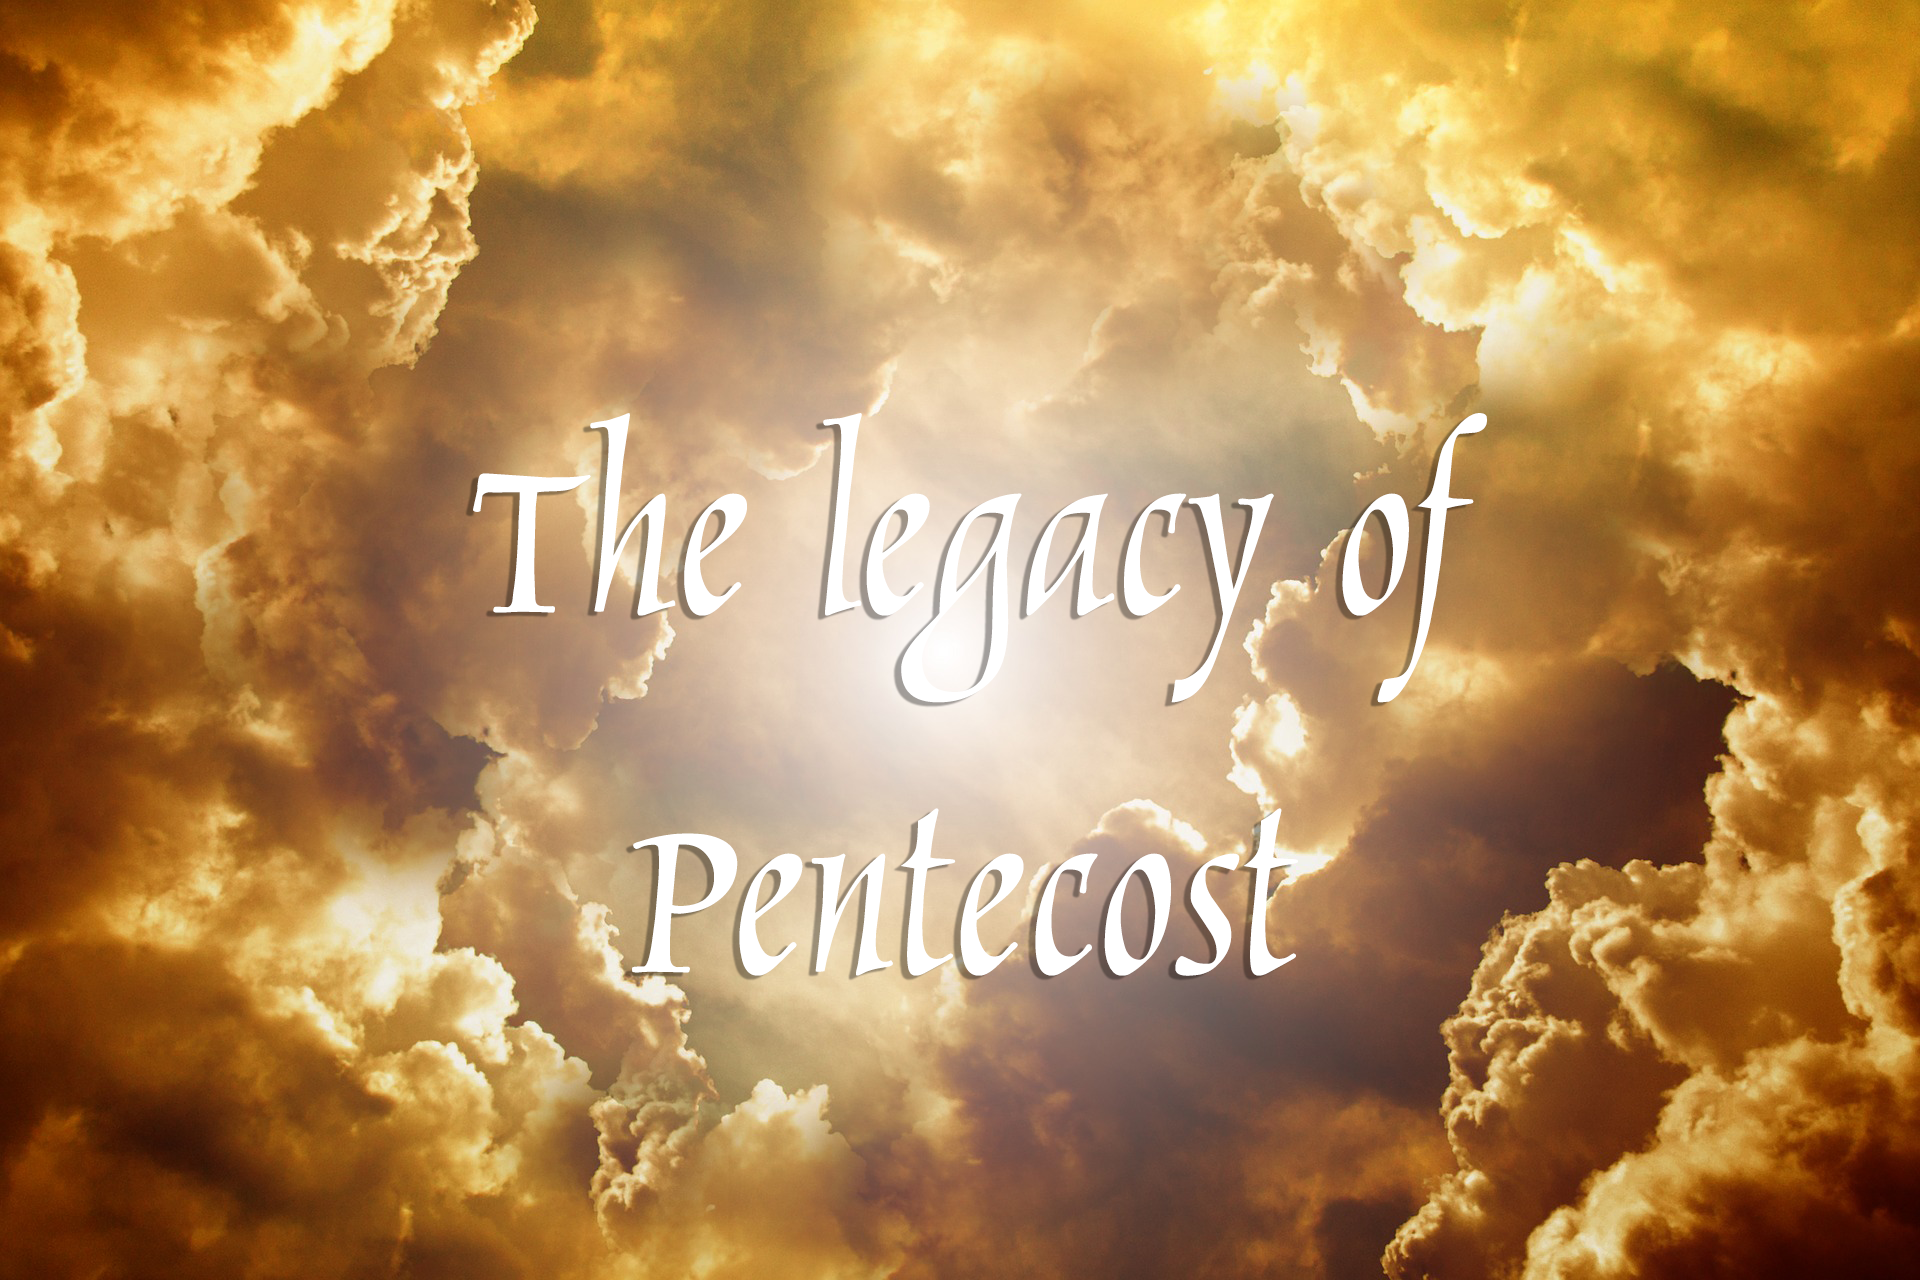 The Legacy of Pentecost